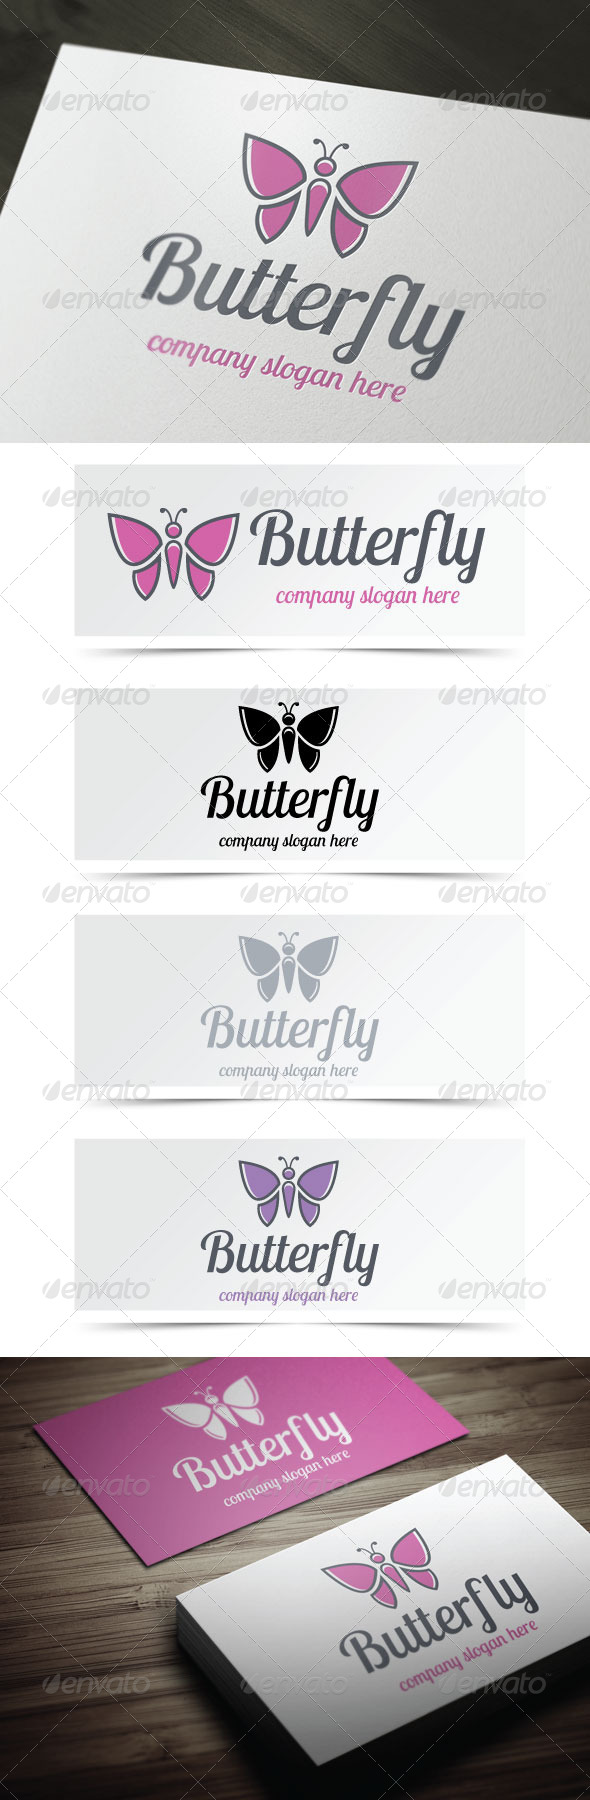 GraphicRiver Butterfly 4843708